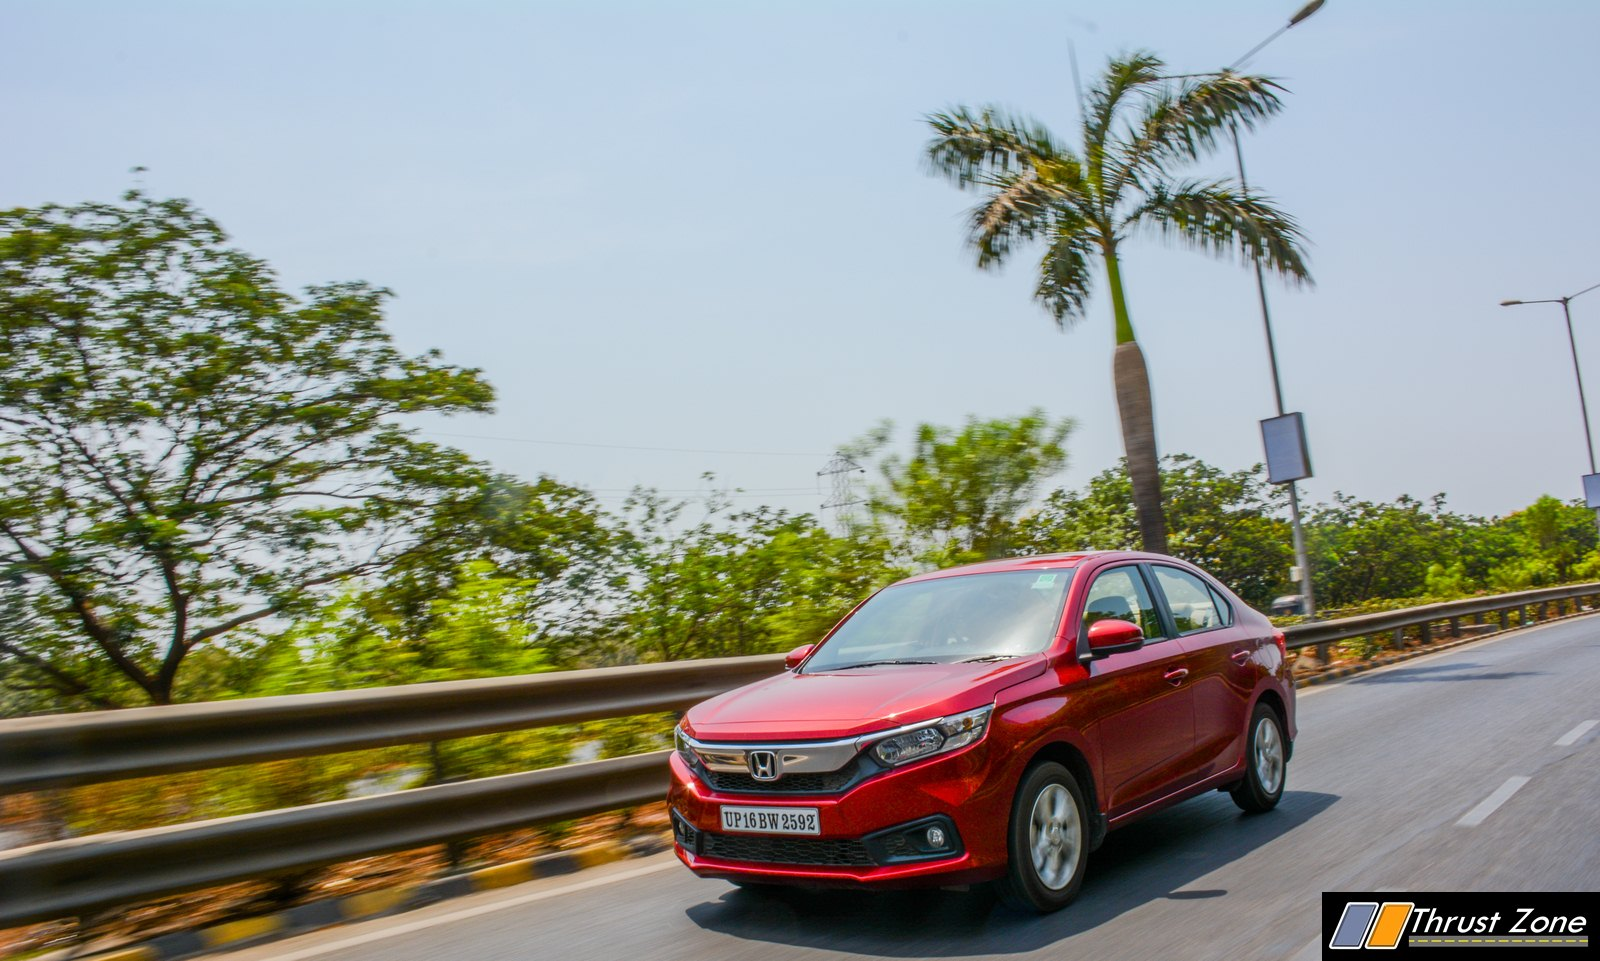 https://www.thrustzone.com/wp-content/uploads/2019/05/Honda-Amaze-CVT-Diesel-Review-17.jpg